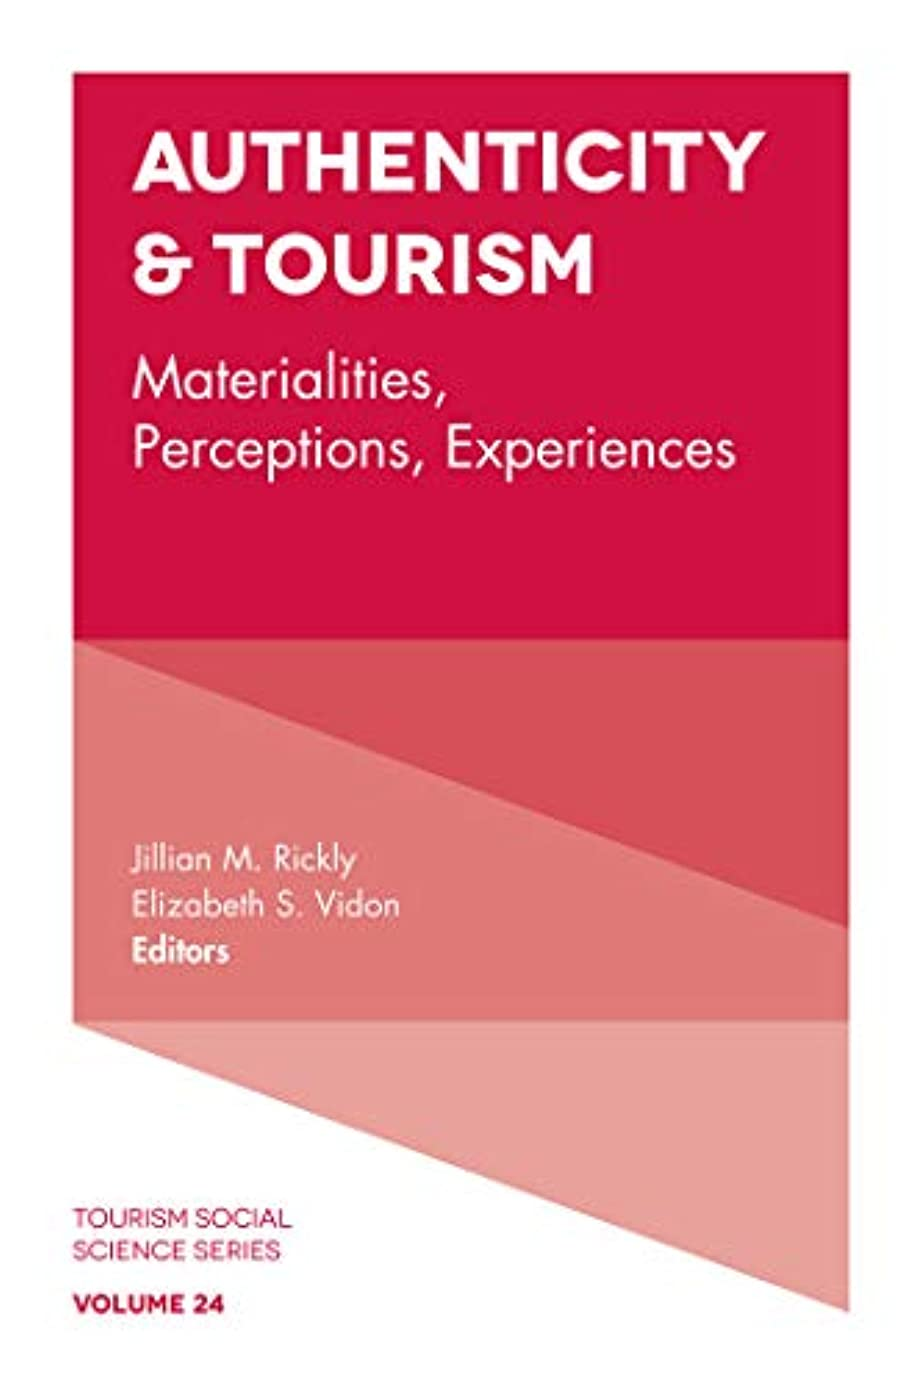 アルネ複製する多様性Authenticity & Tourism: Materialities, Perceptions, Experiences (Tourism Social Science Series Book 24) (English Edition)